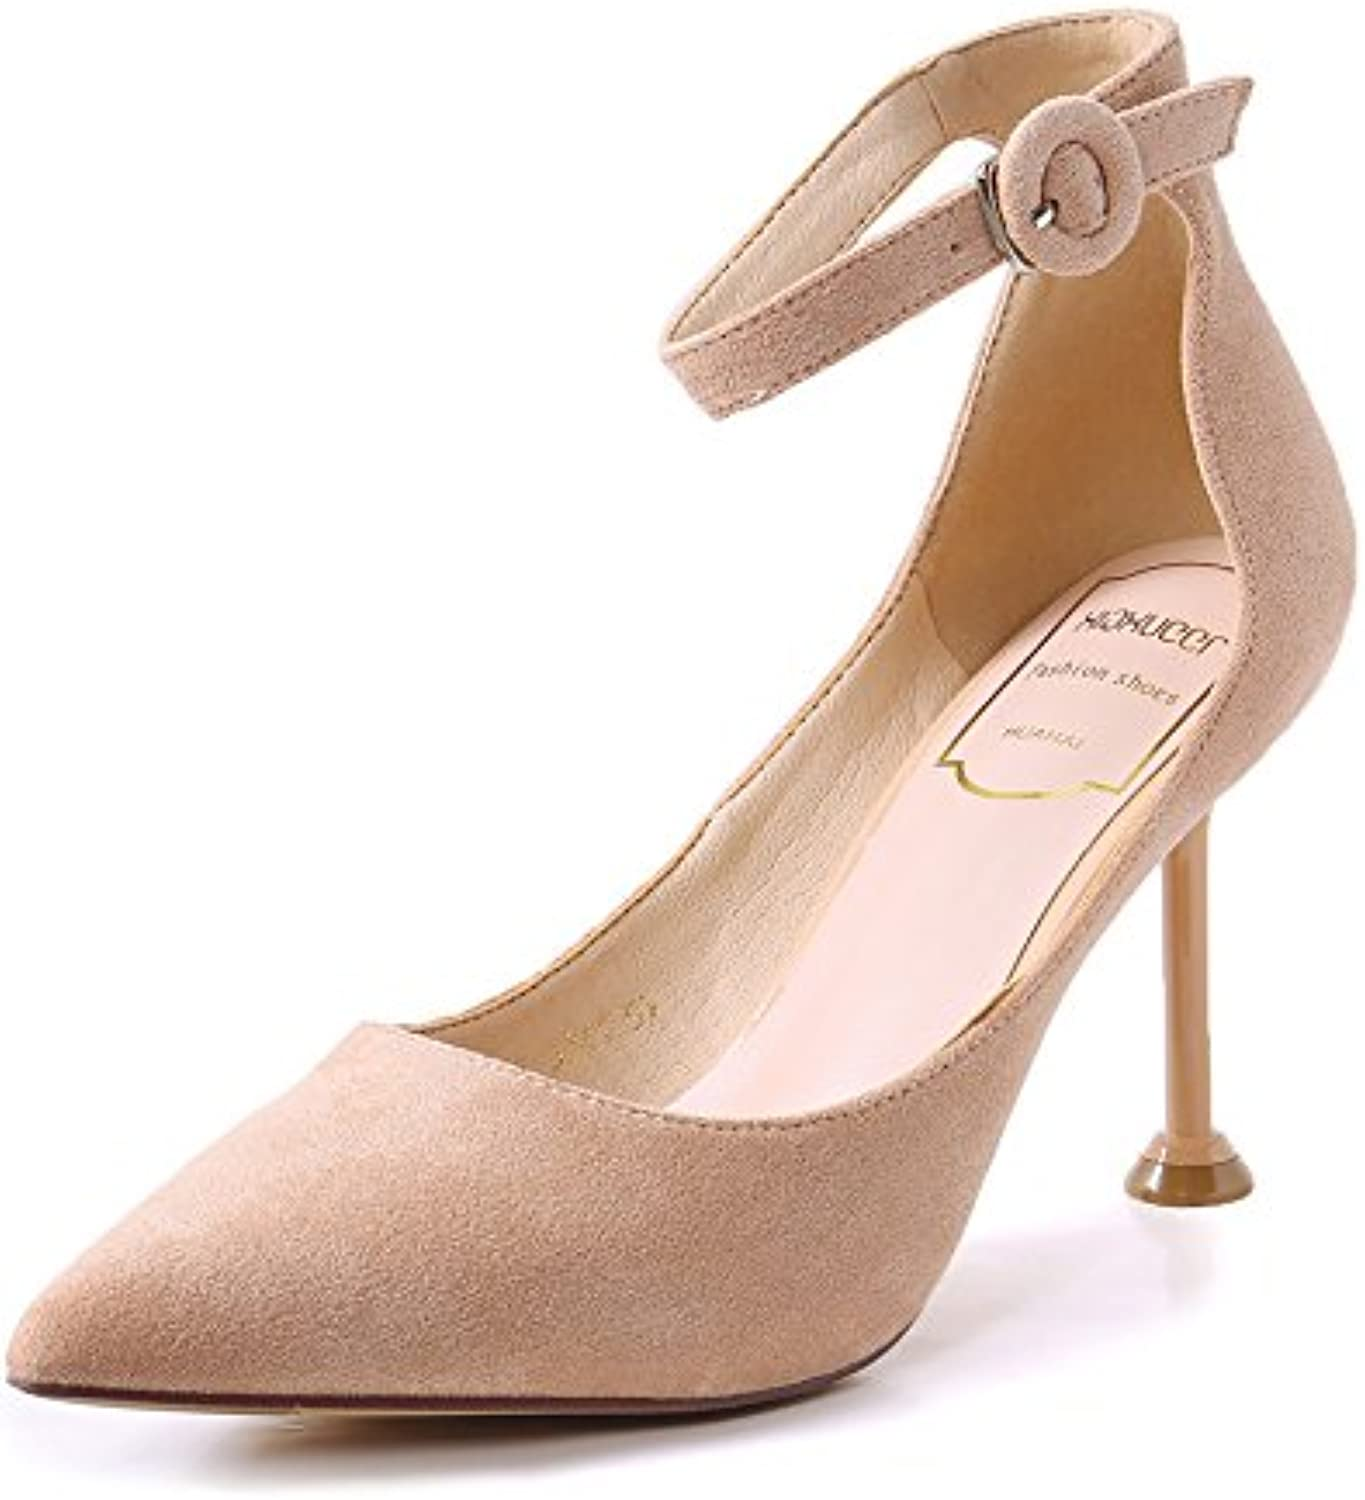 LGK&FA High Heel Slender Heel Shoes Thirty-Four Pink Apricot Color